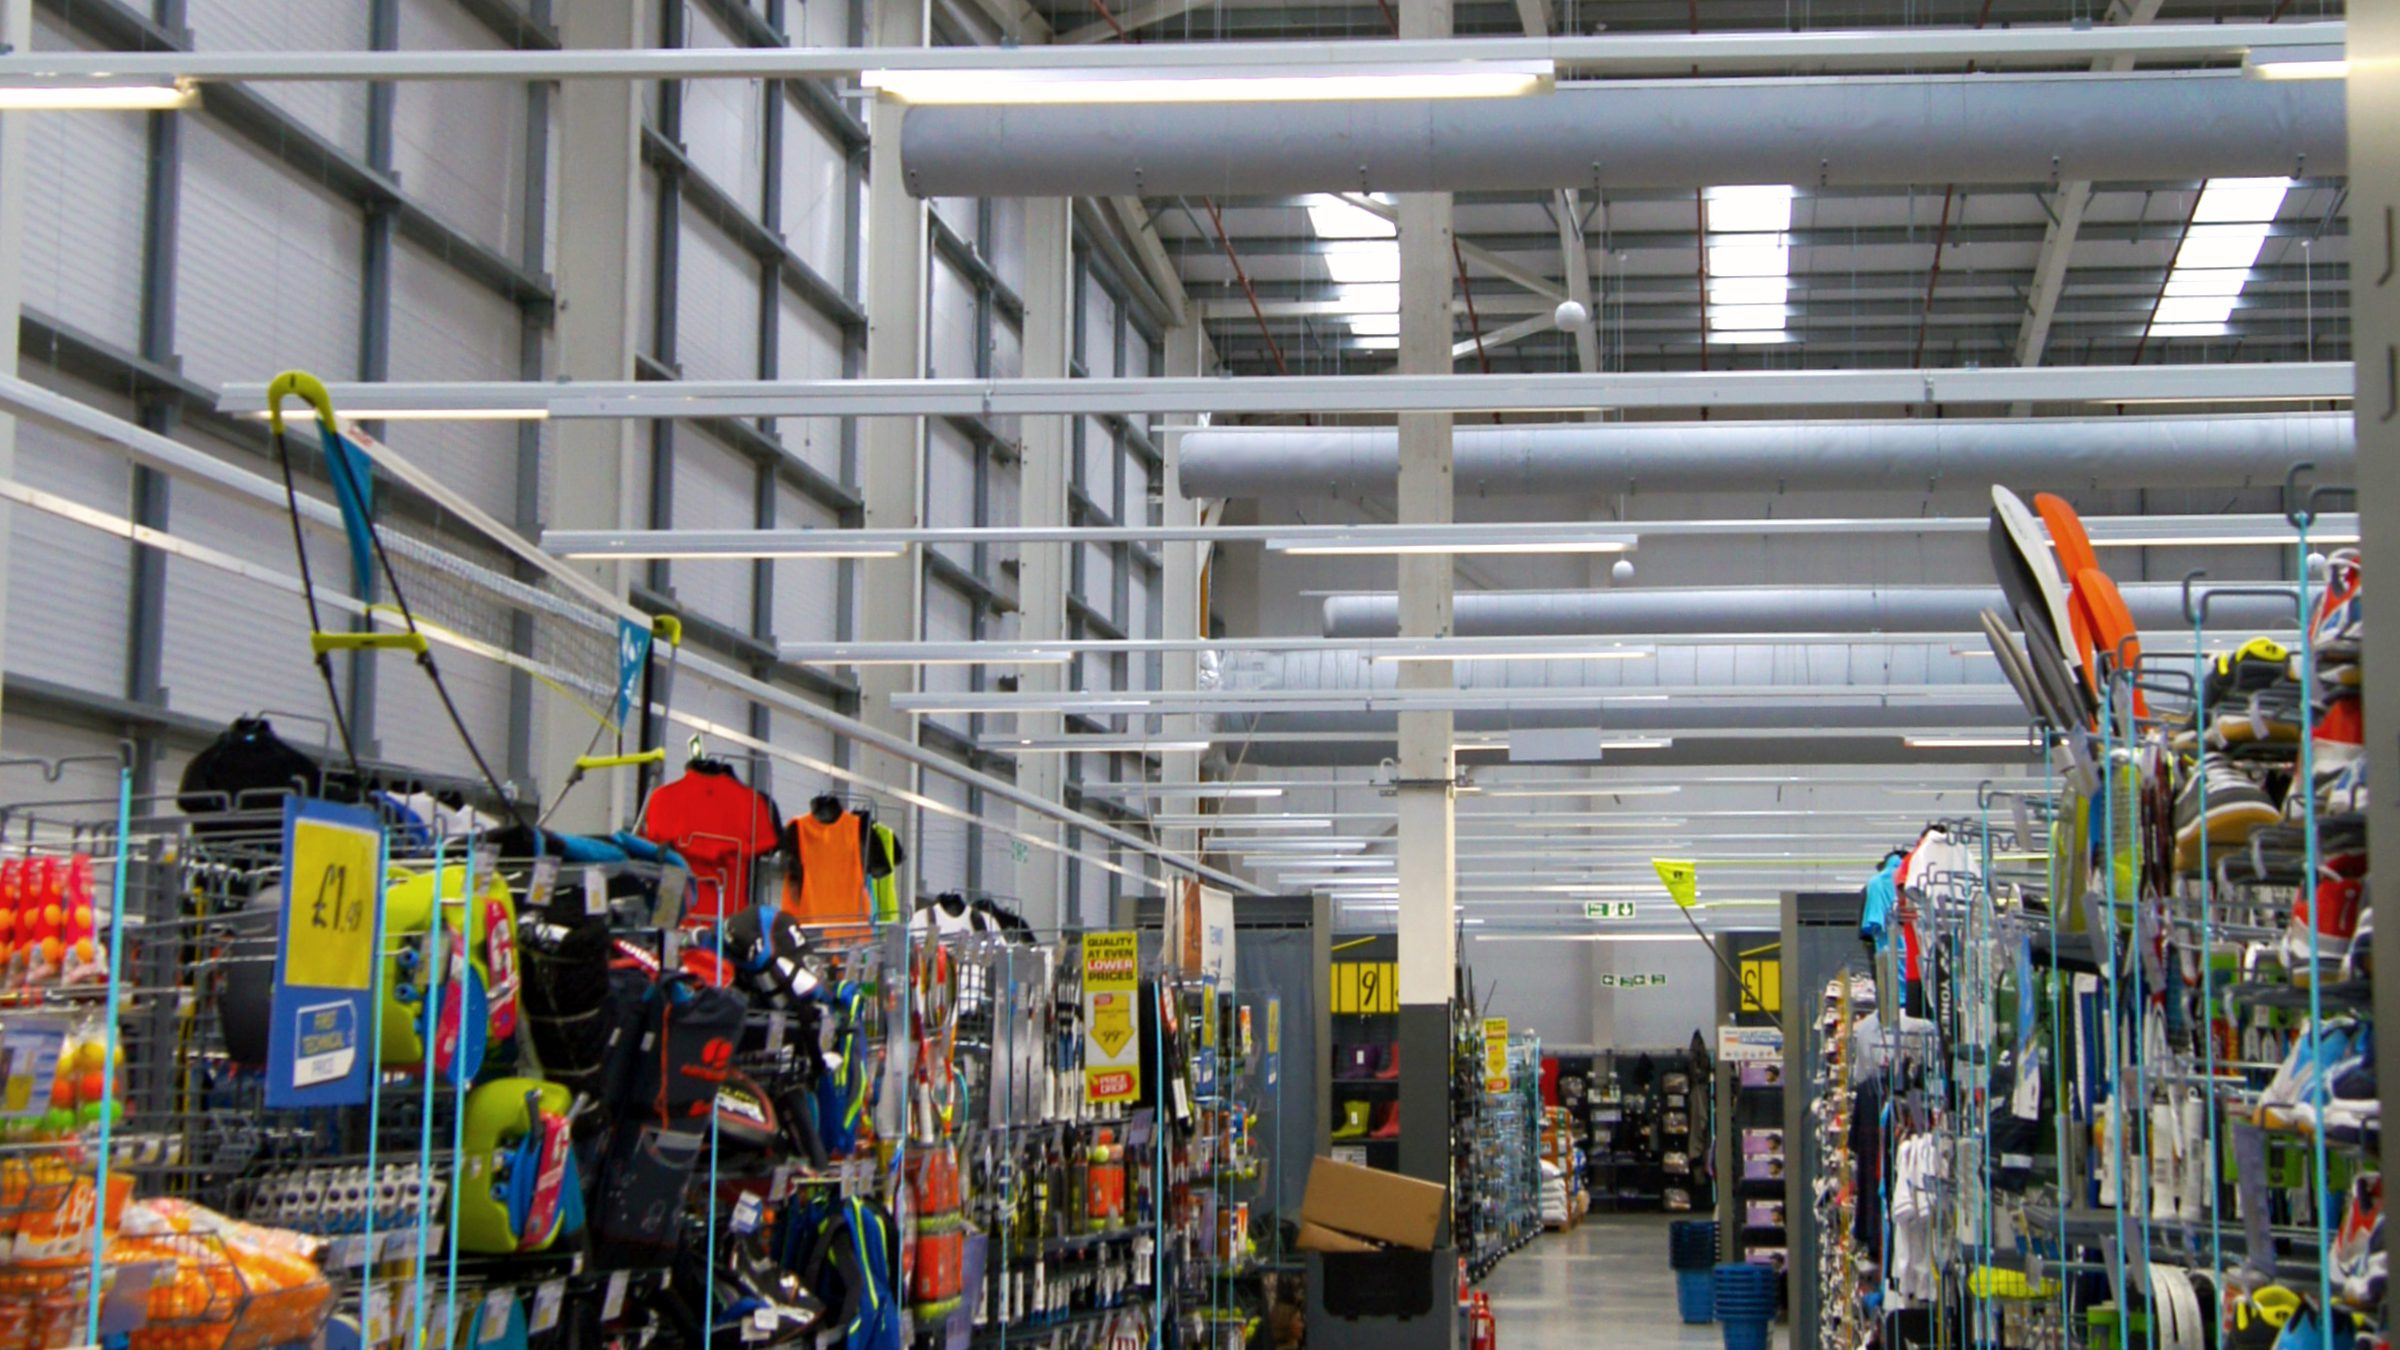 Decathlon retail area showing new fabric ducts.